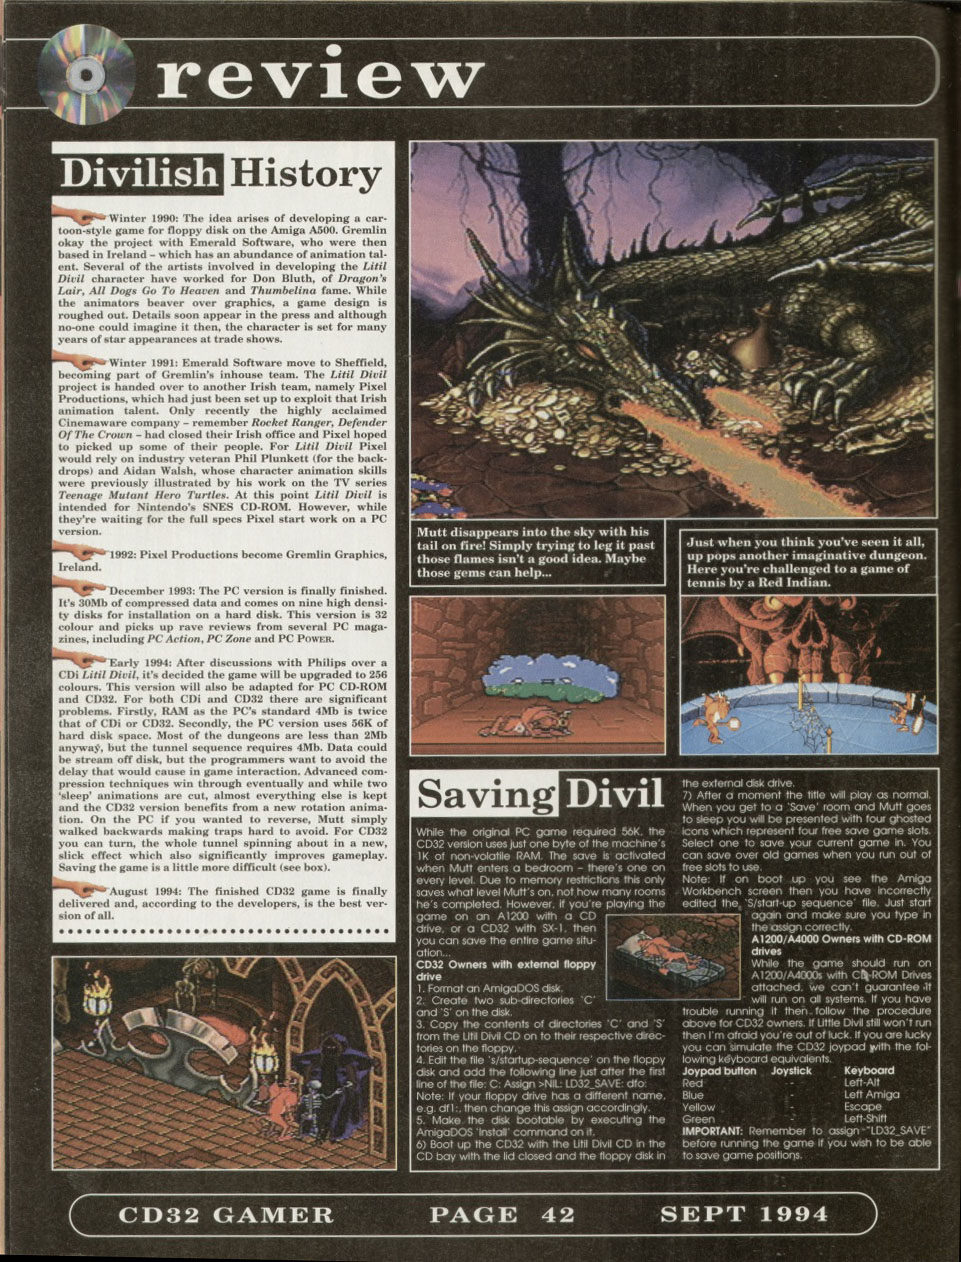 Gremlin Graphics Ireland History